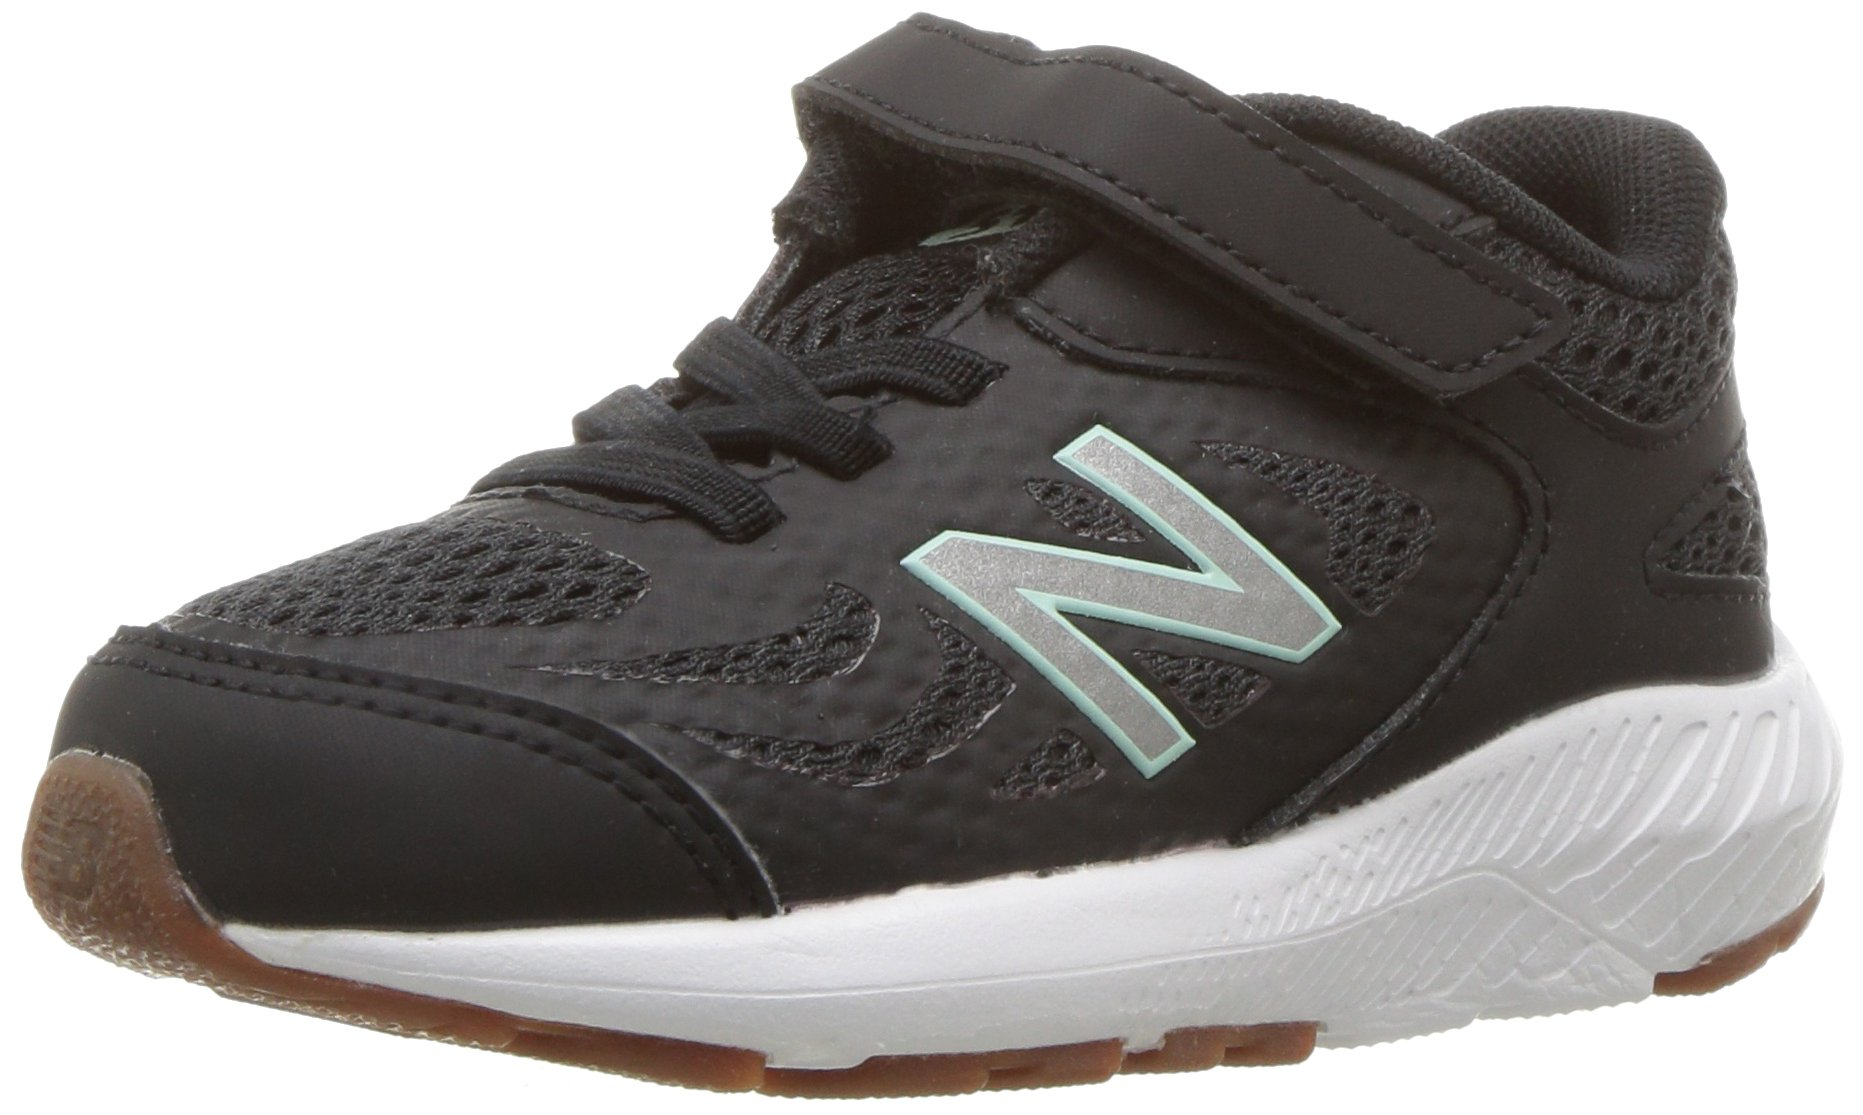 New Balance Girls' 519v1 Hook and Loop Running Shoe Black/Seafoam 2 M US Infant